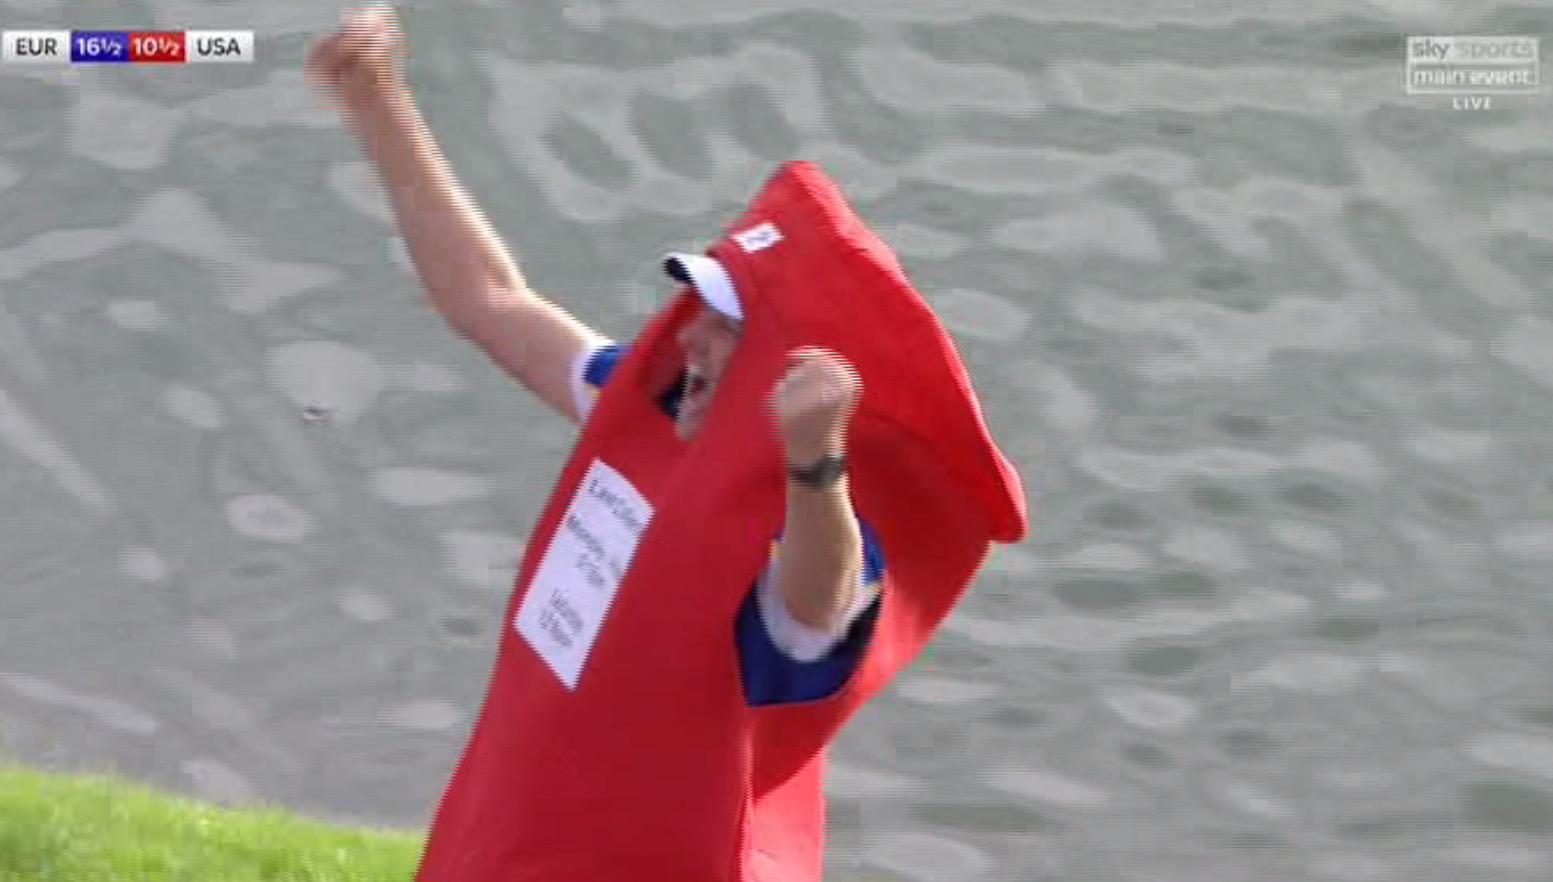 Poulter celebrates winning the Ryder Cup while wearing a post box outfit